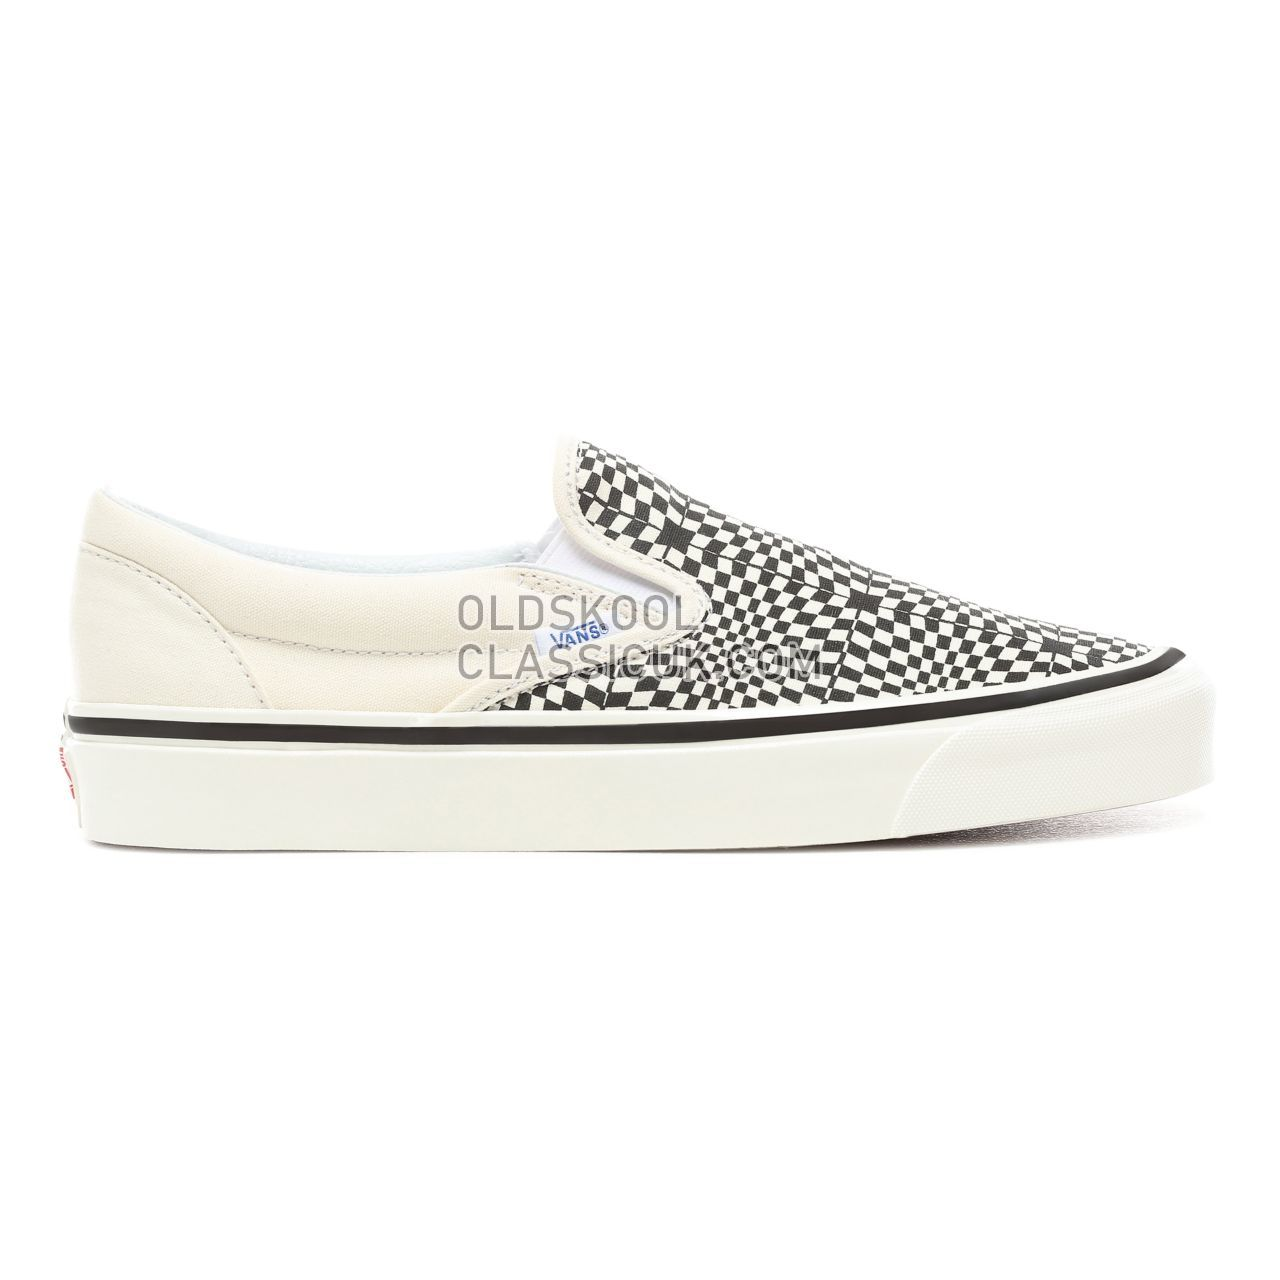 Vans Anaheim Factory Slip-On 98 DX Sneakers Mens (Anaheim Factory) Og Black/White/Warp Check VN0A3JEXVMY Shoes